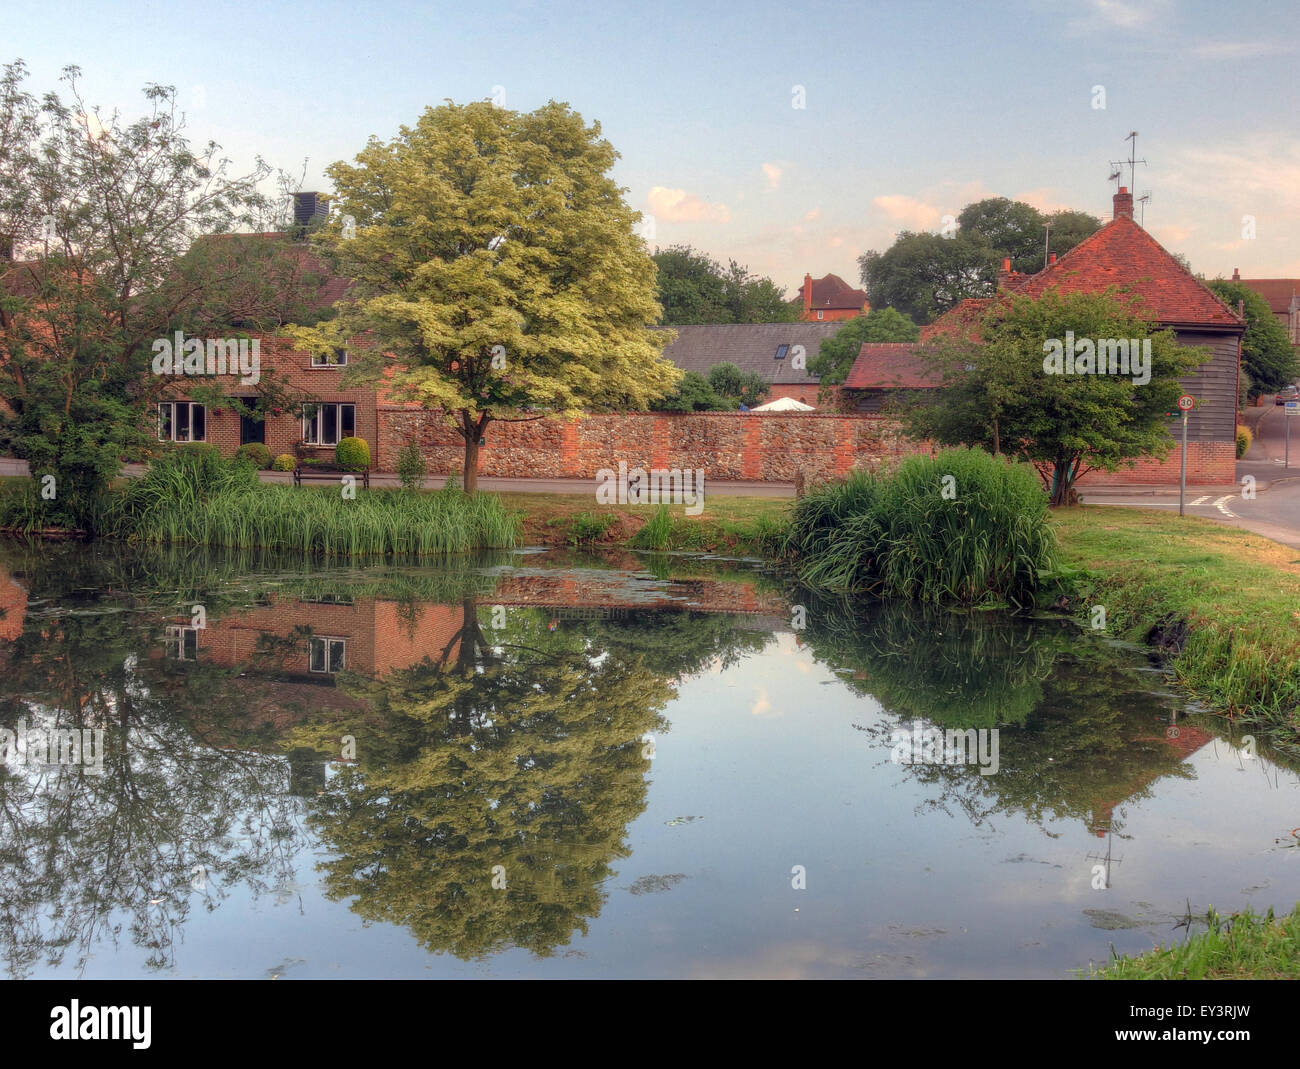 Berks,west,reflection,tree,trees,summer,picnic,the,pond,east,Ilsley,West,ilsley,Berkshire,village,town,English,British,GB,Great,Britain,Great Britain,GoTonySmith,Buy Pictures of,Buy Images Of